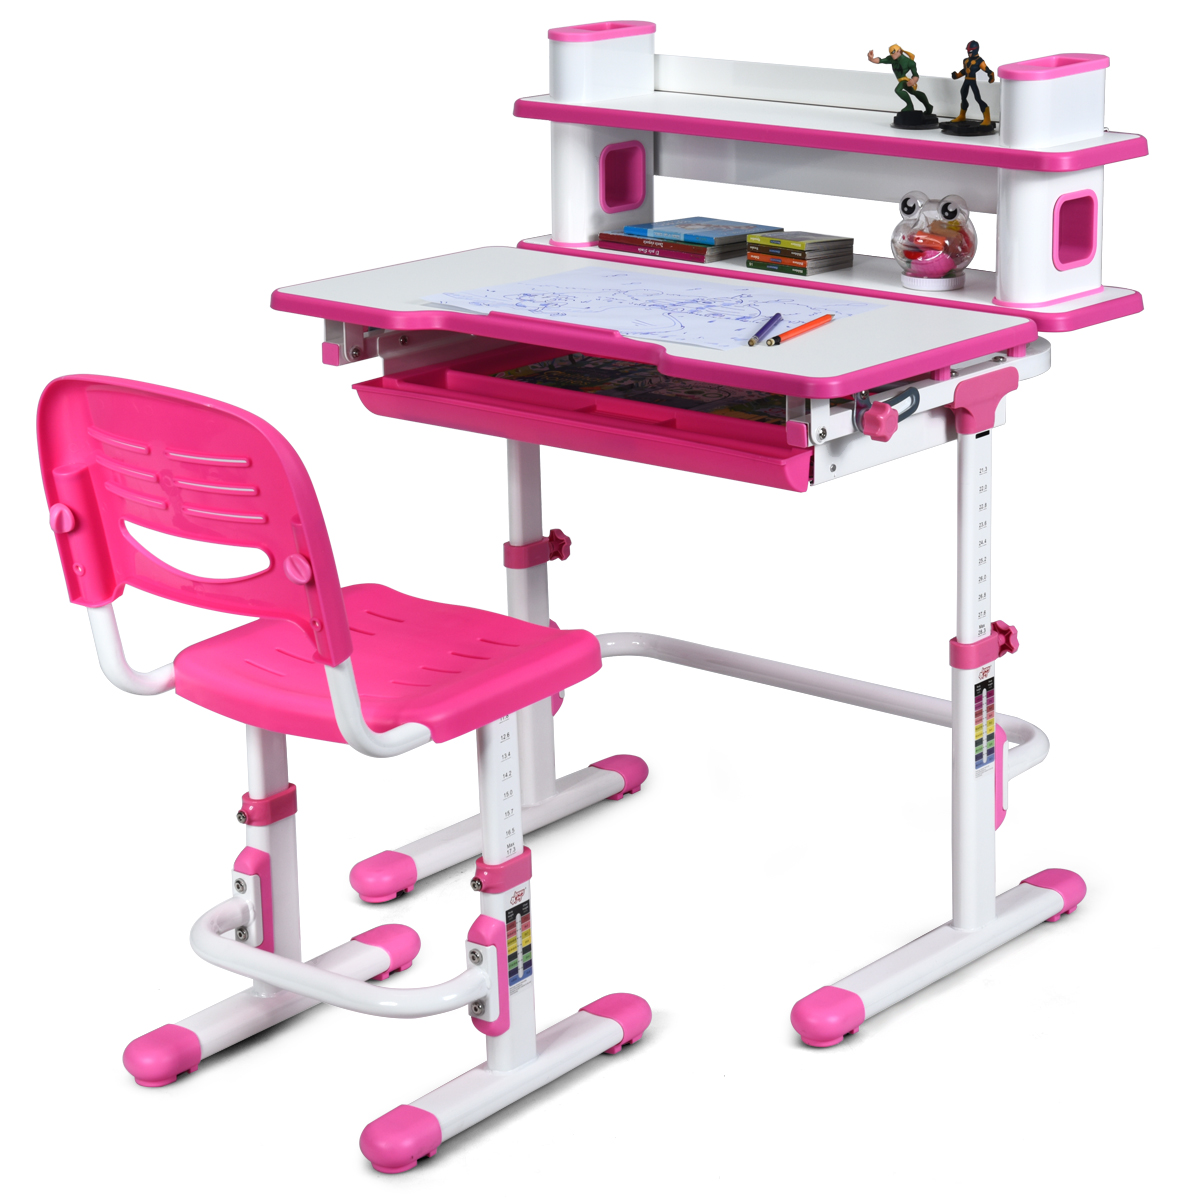 Image of: Children S Desk Chair Set Height Adjustable Working Table W Shelf Drawer Pink Buy At The Price Of 262 93 In Aliexpress Com Imall Com